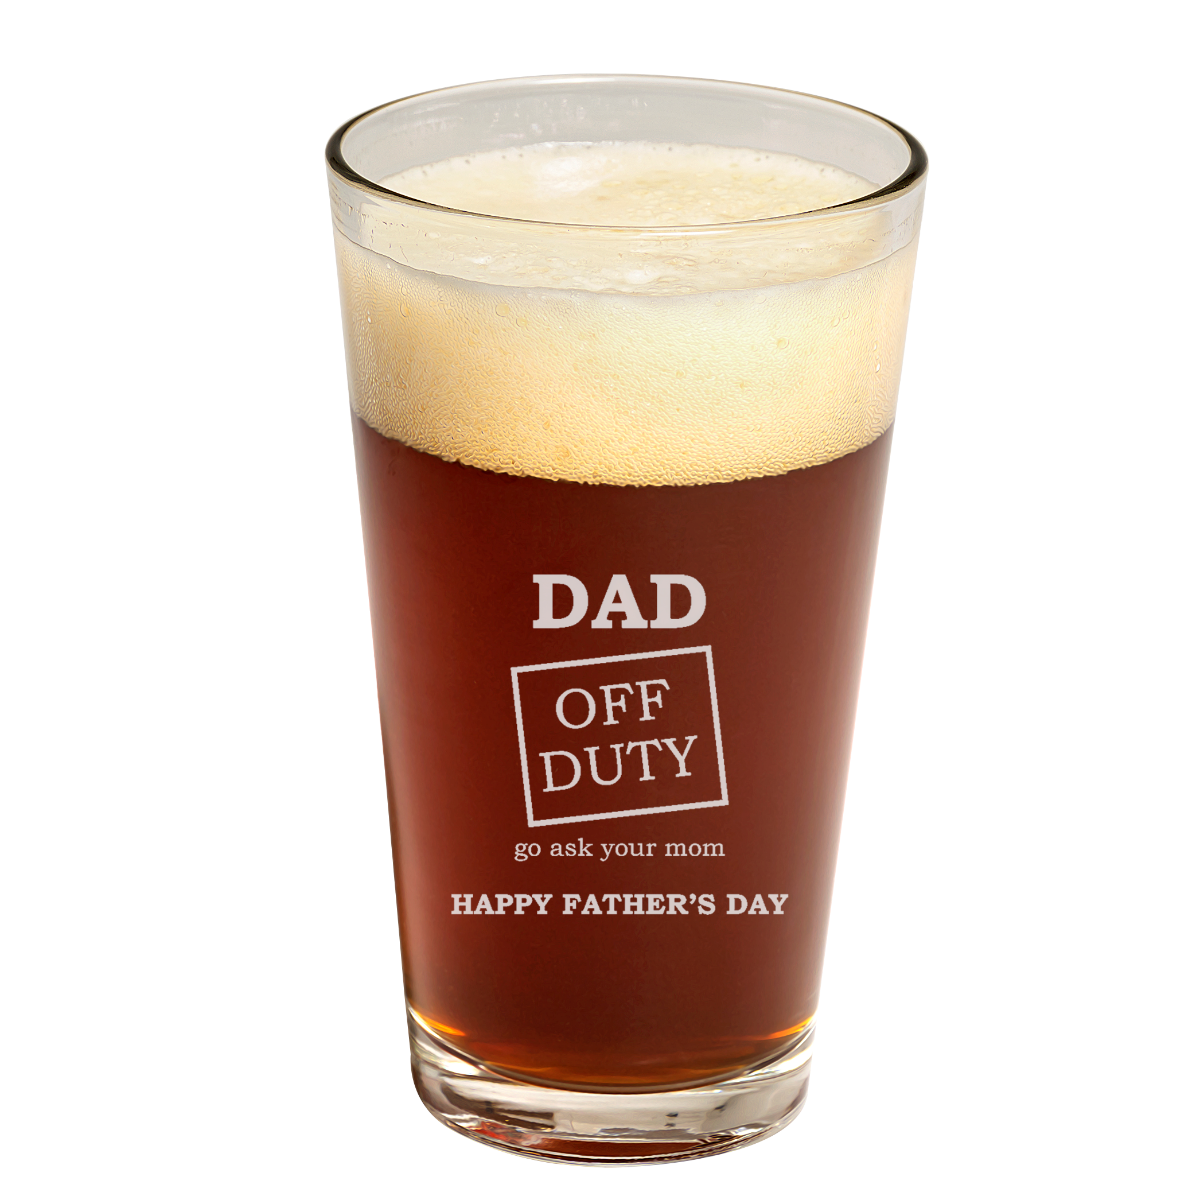 Dad Off Duty father's day Pint Glass